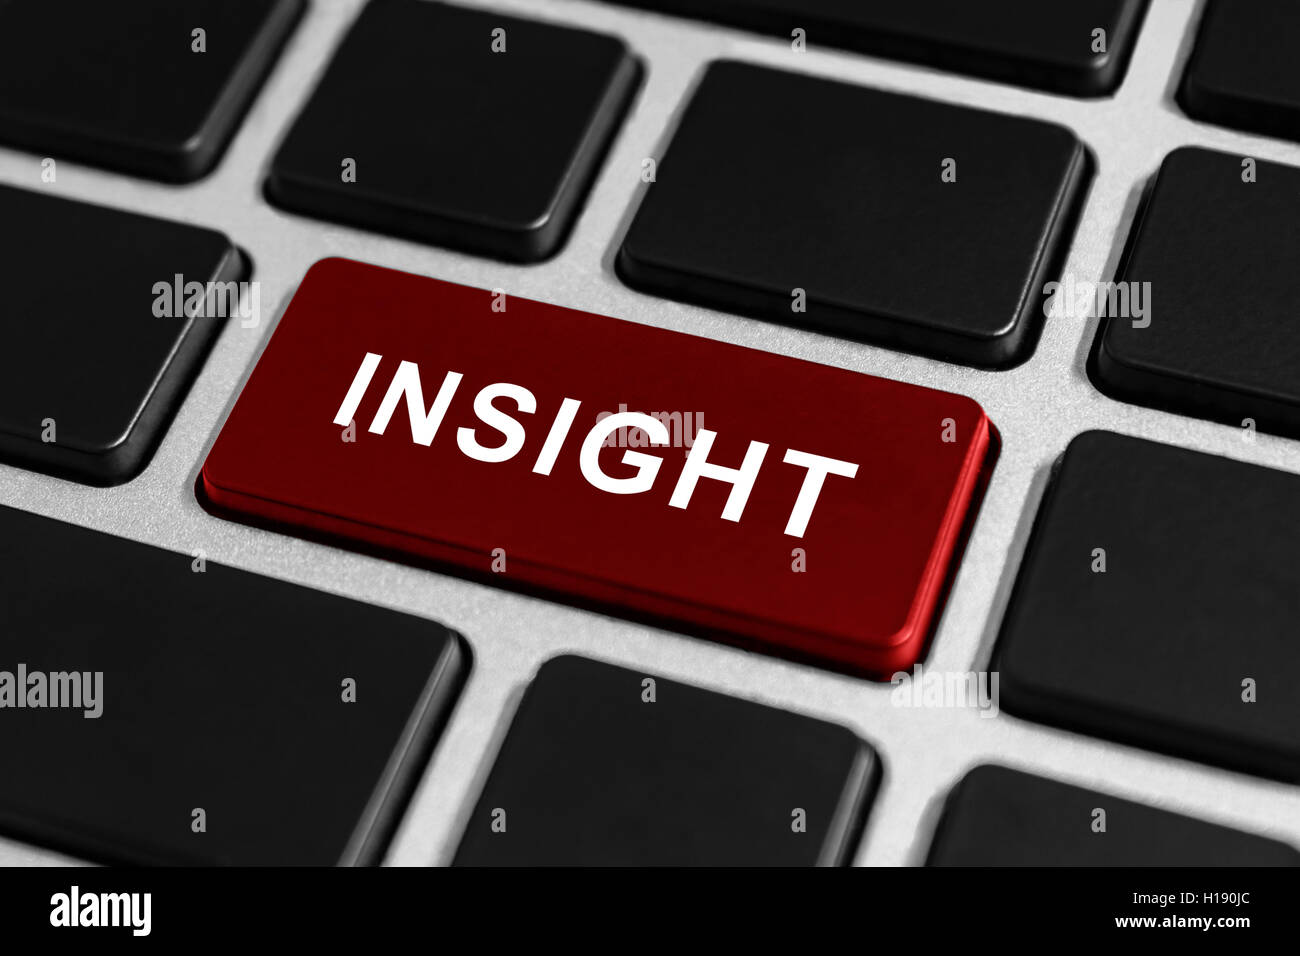 insight button on keyboard, business concept Stock Photo